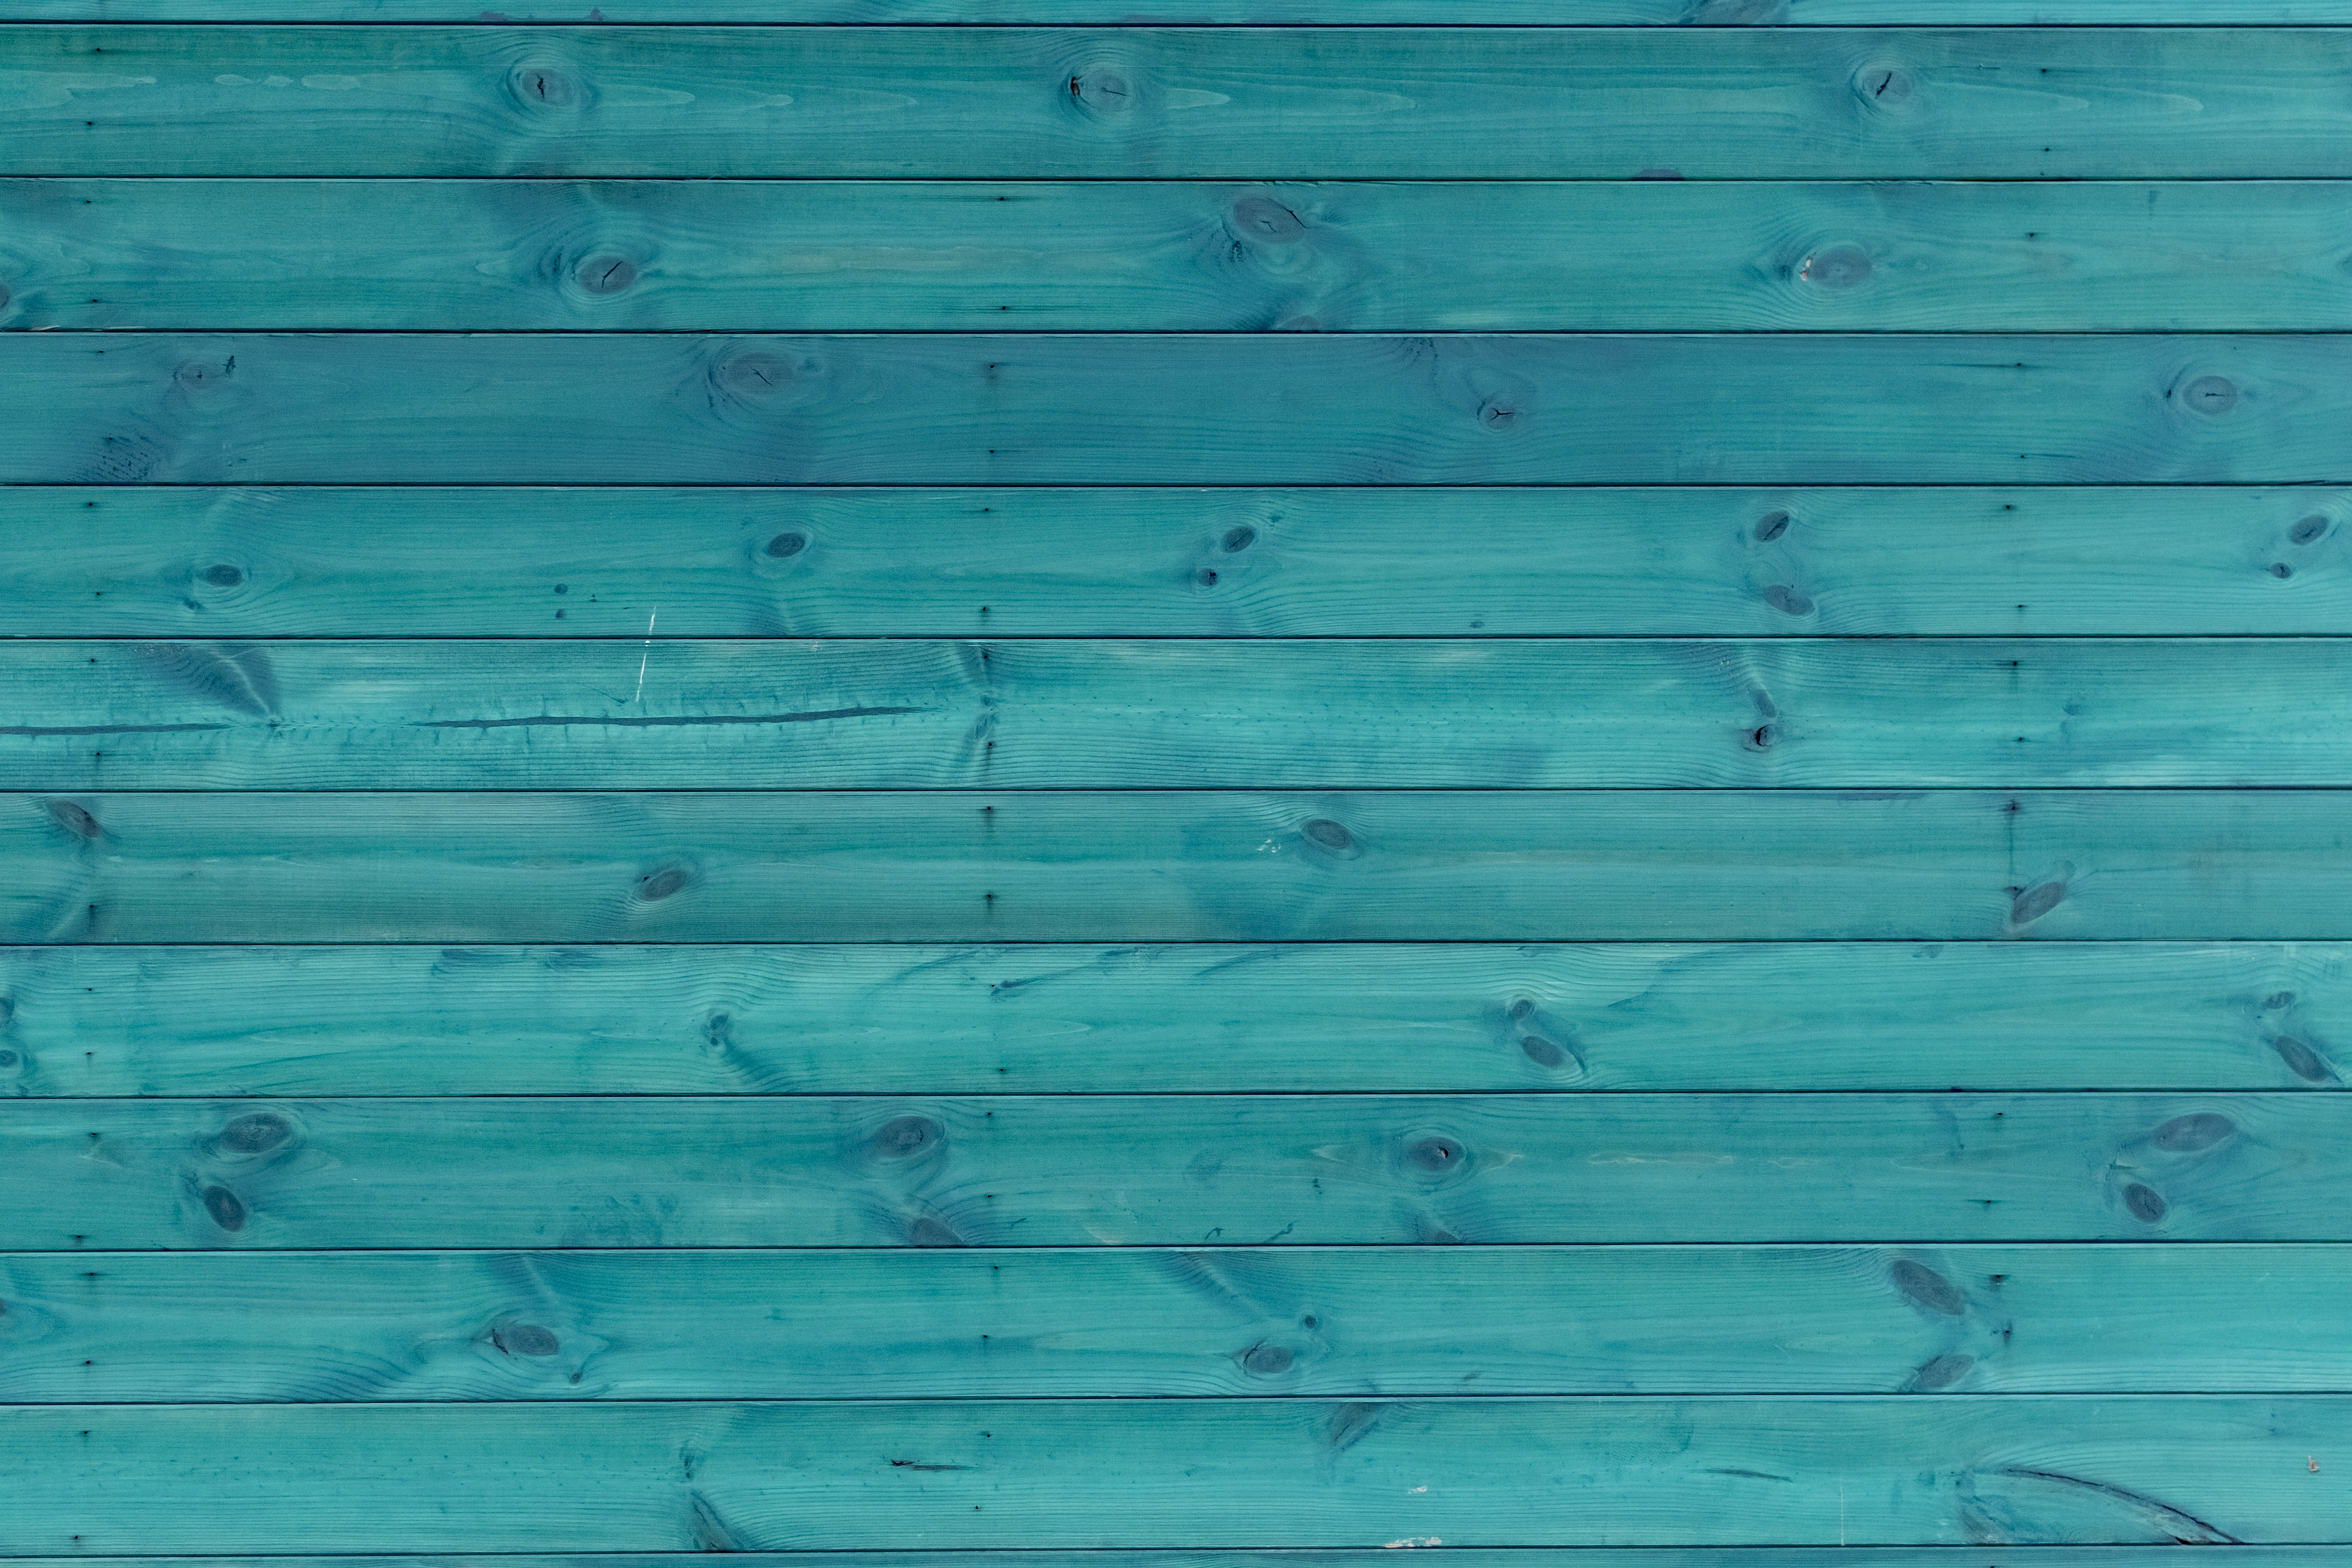 66103 Screensavers and Wallpapers Wooden for phone. Download Board, Wood, Wooden, Texture, Textures, Wall, Planks, Horizontal pictures for free